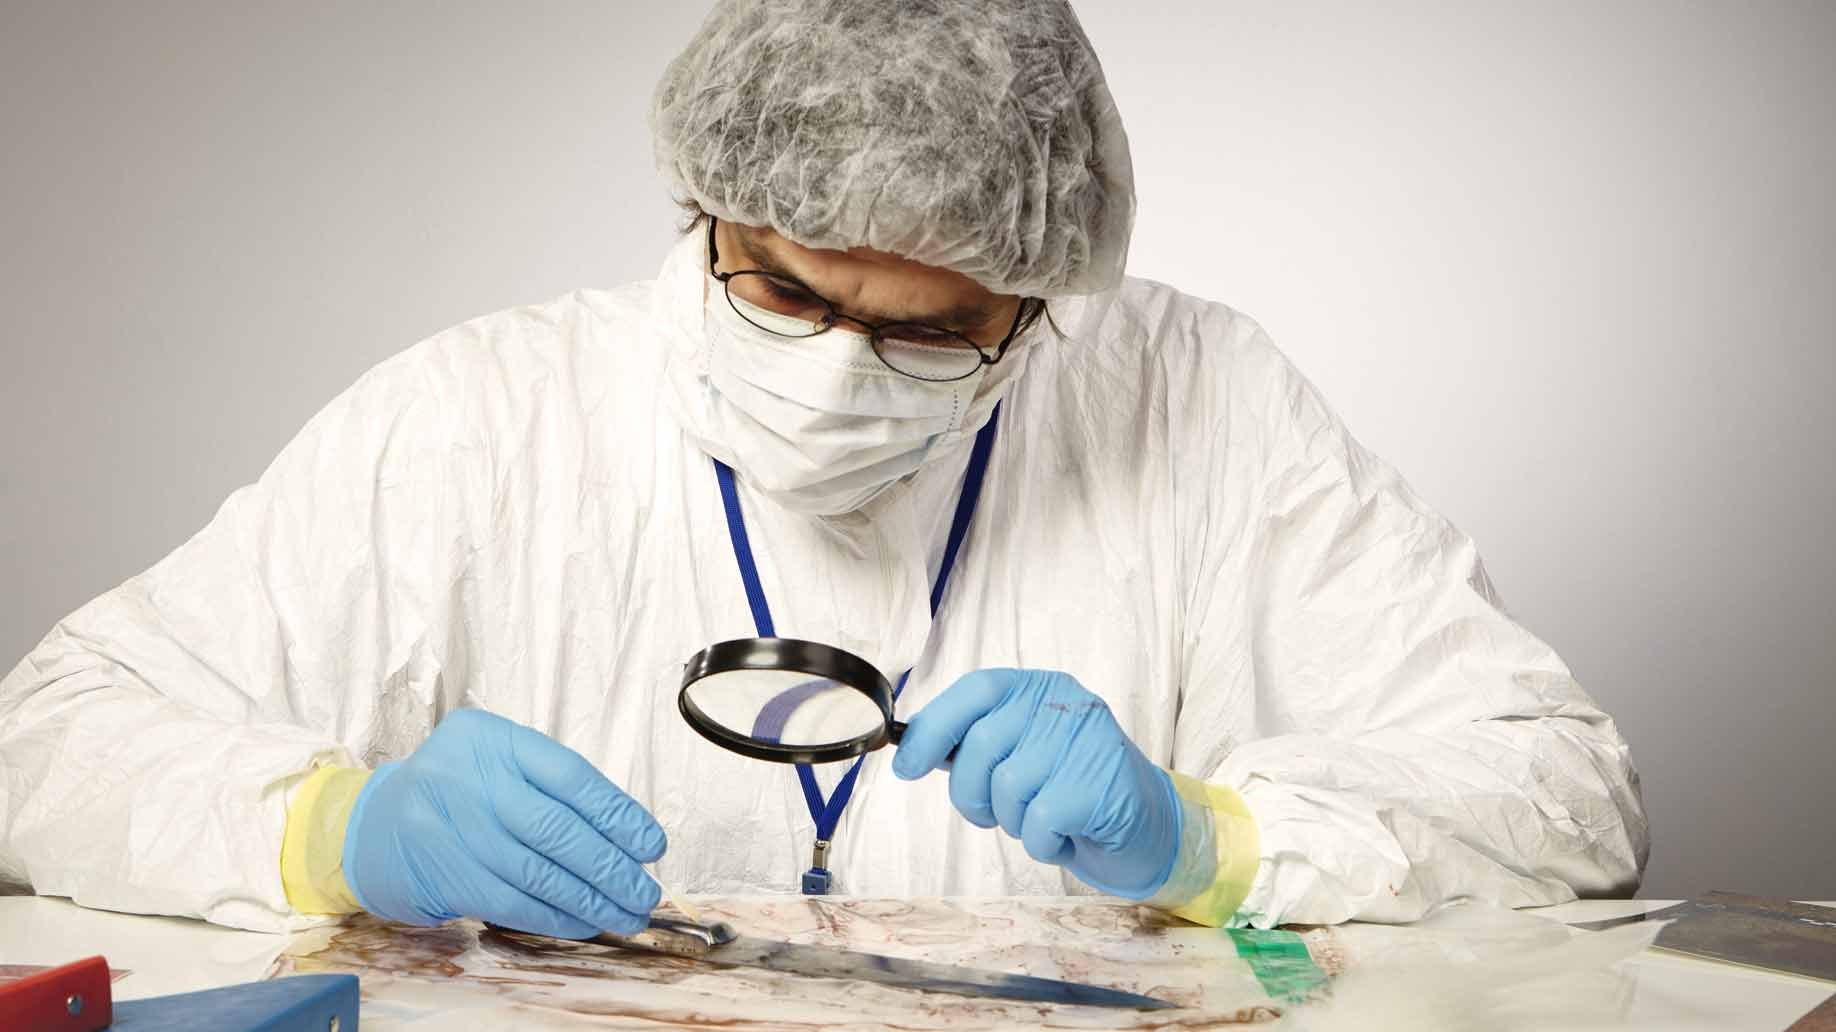 forensic scientist examines evidence